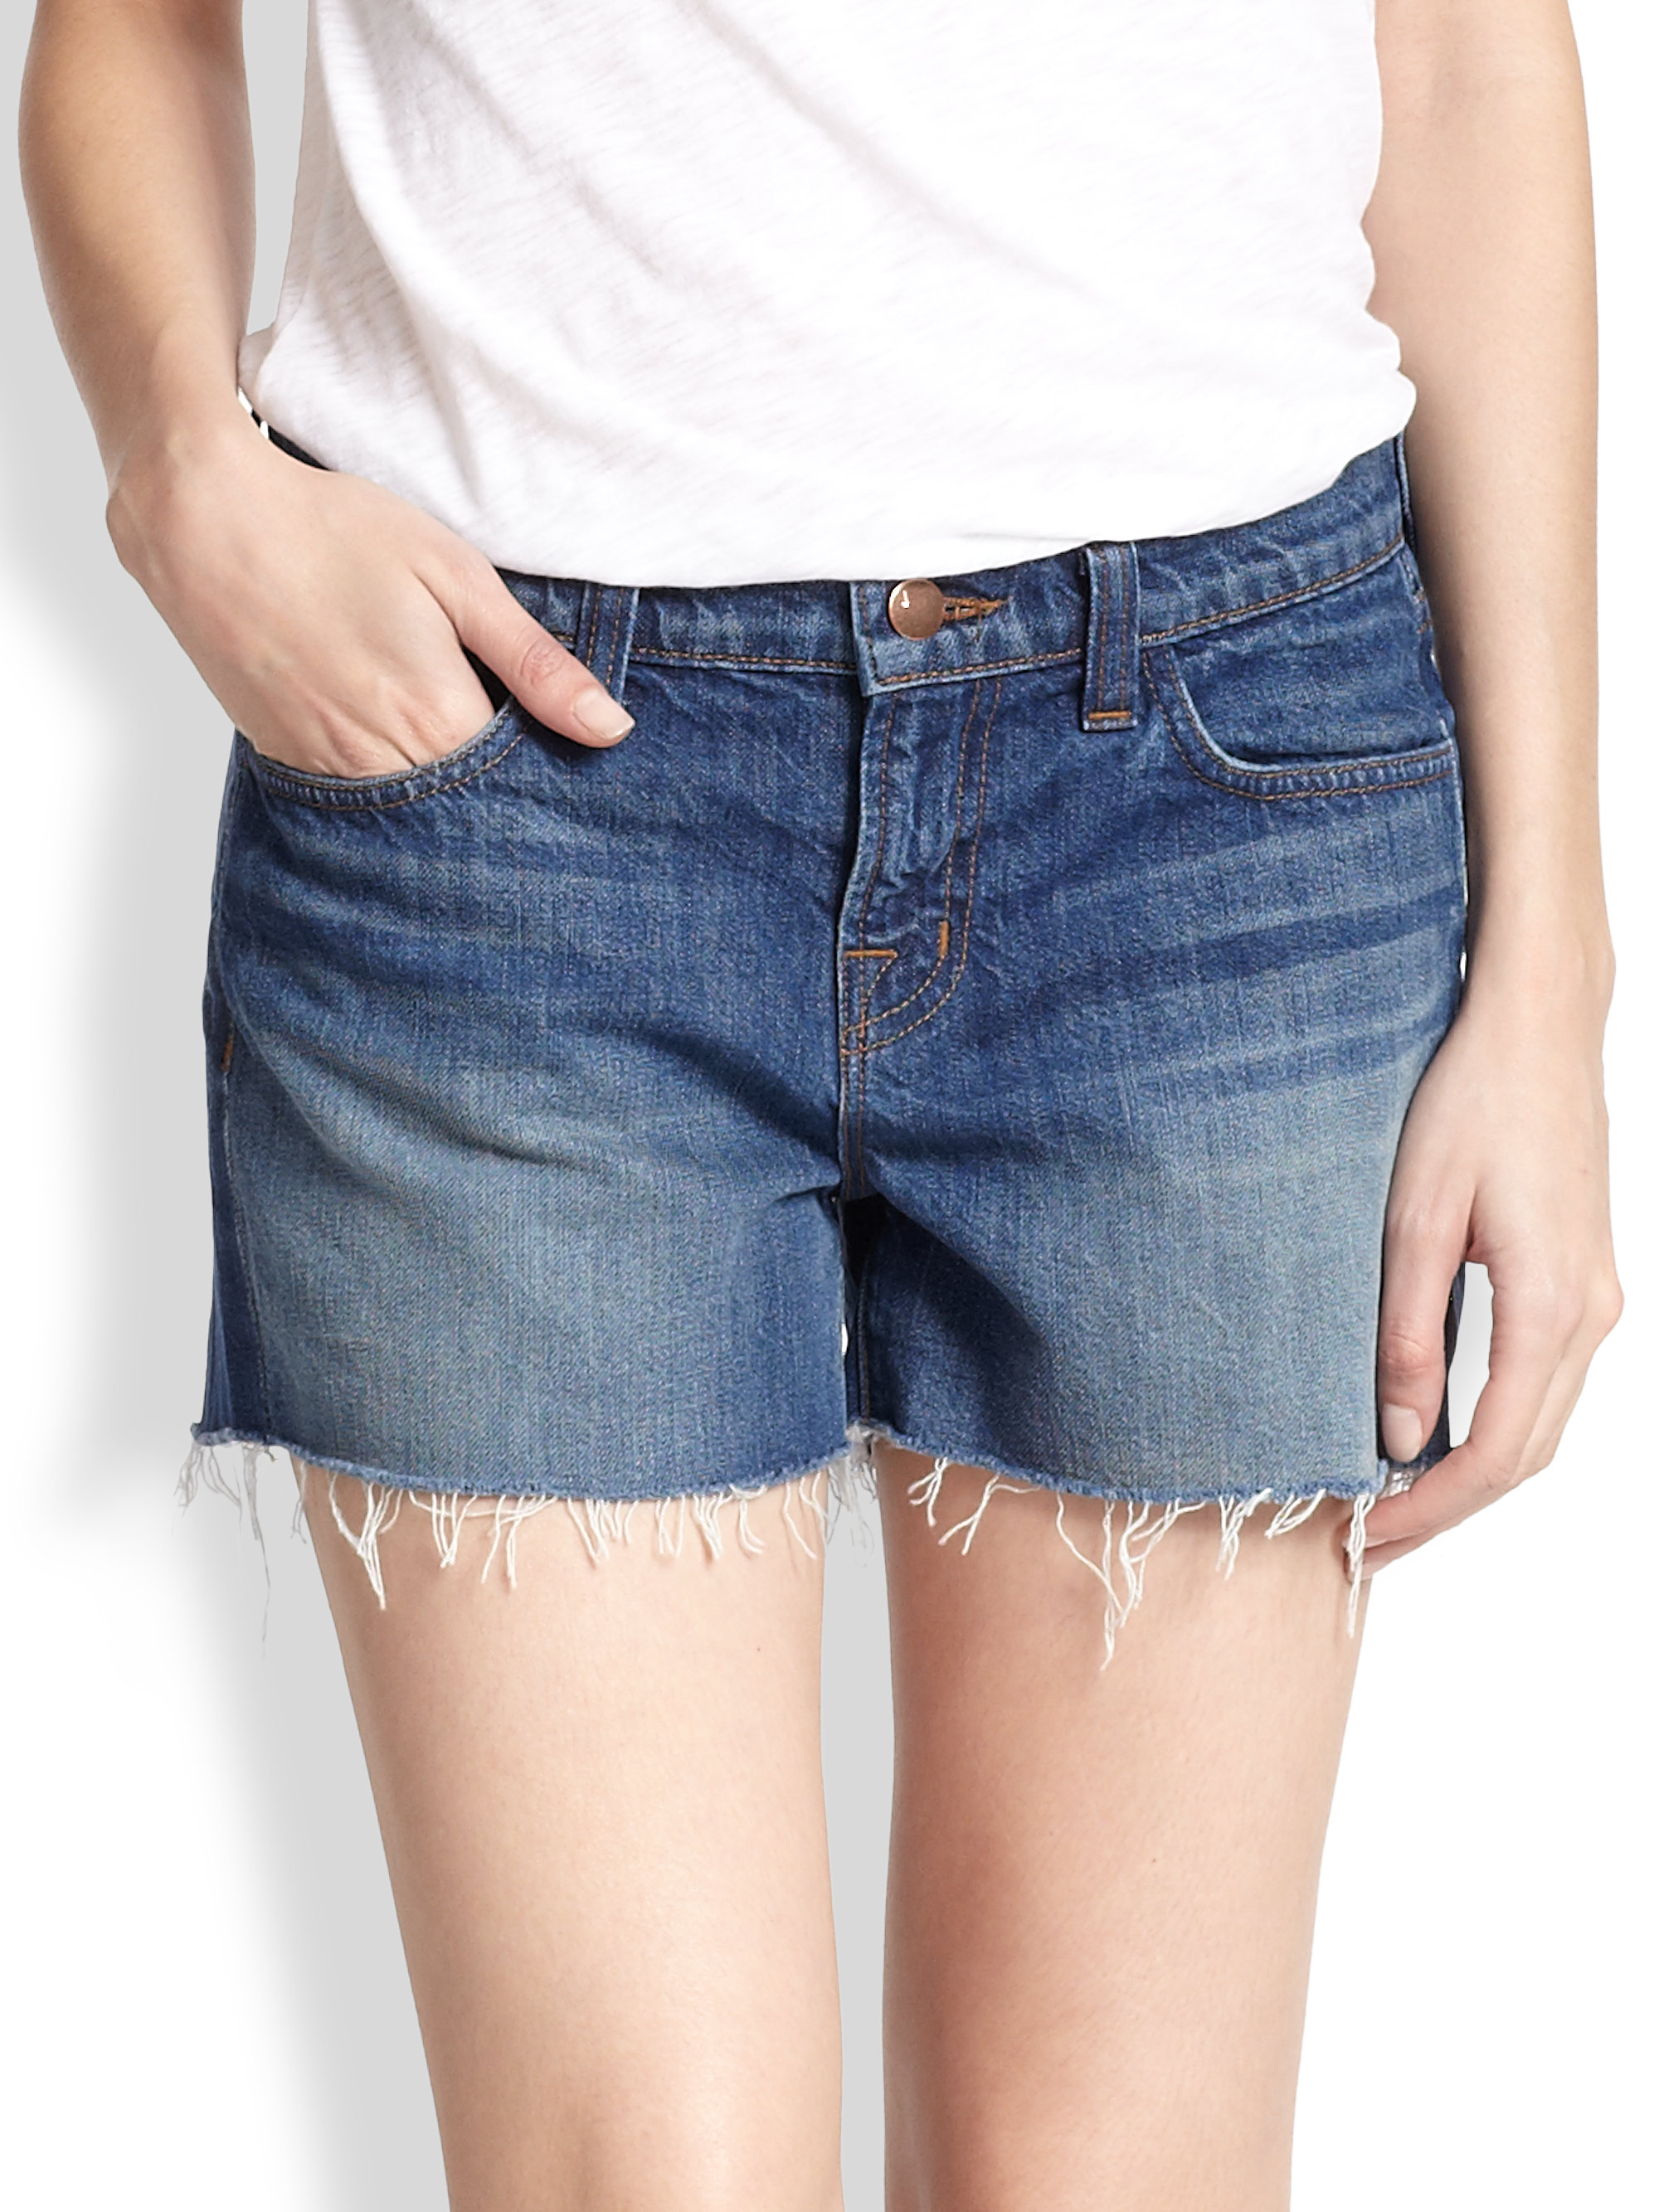 Low Price Fee Shipping denim shorts - Blue J Brand Up To Date Classic Sale Online Very Cheap Extremely Cheap Online eFGRdWK